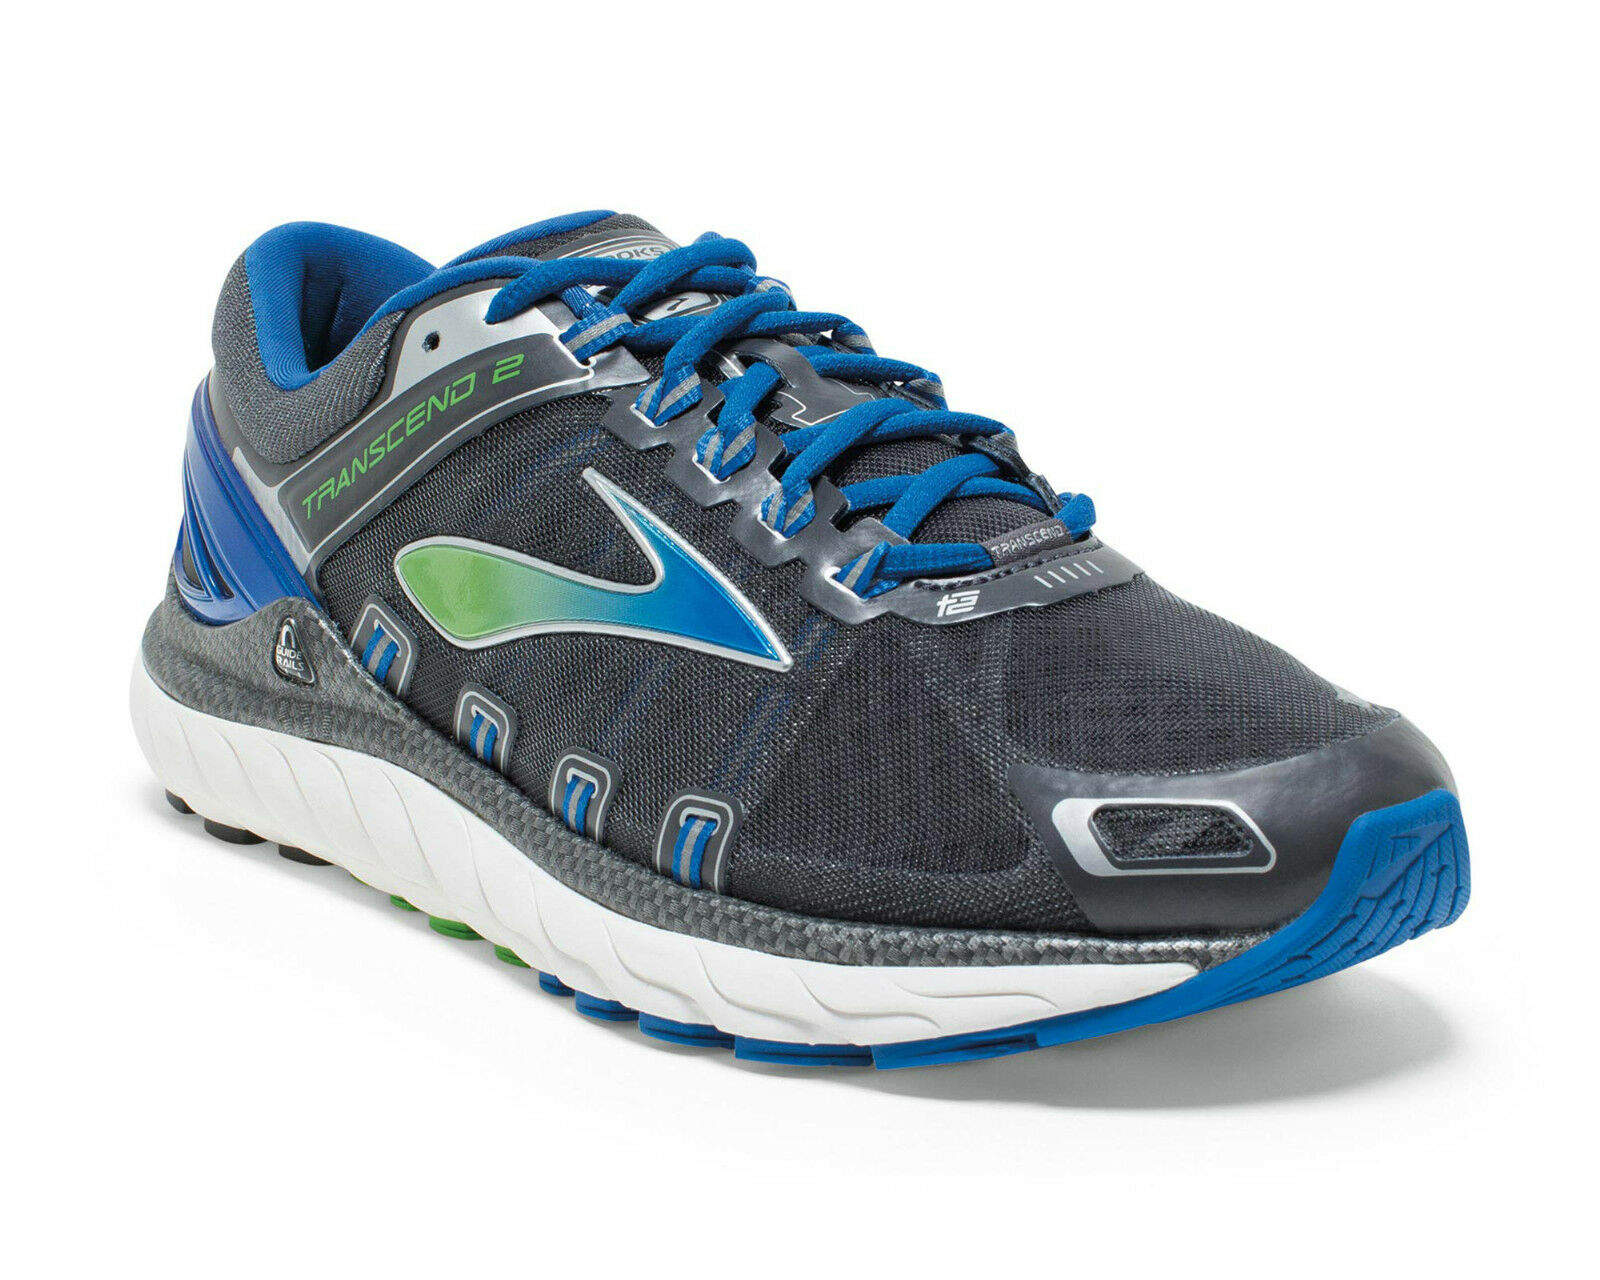 Brooks  Transcend 2 Mens Running scarpe (D) (041)BUY ORA  i nuovi stili più caldi